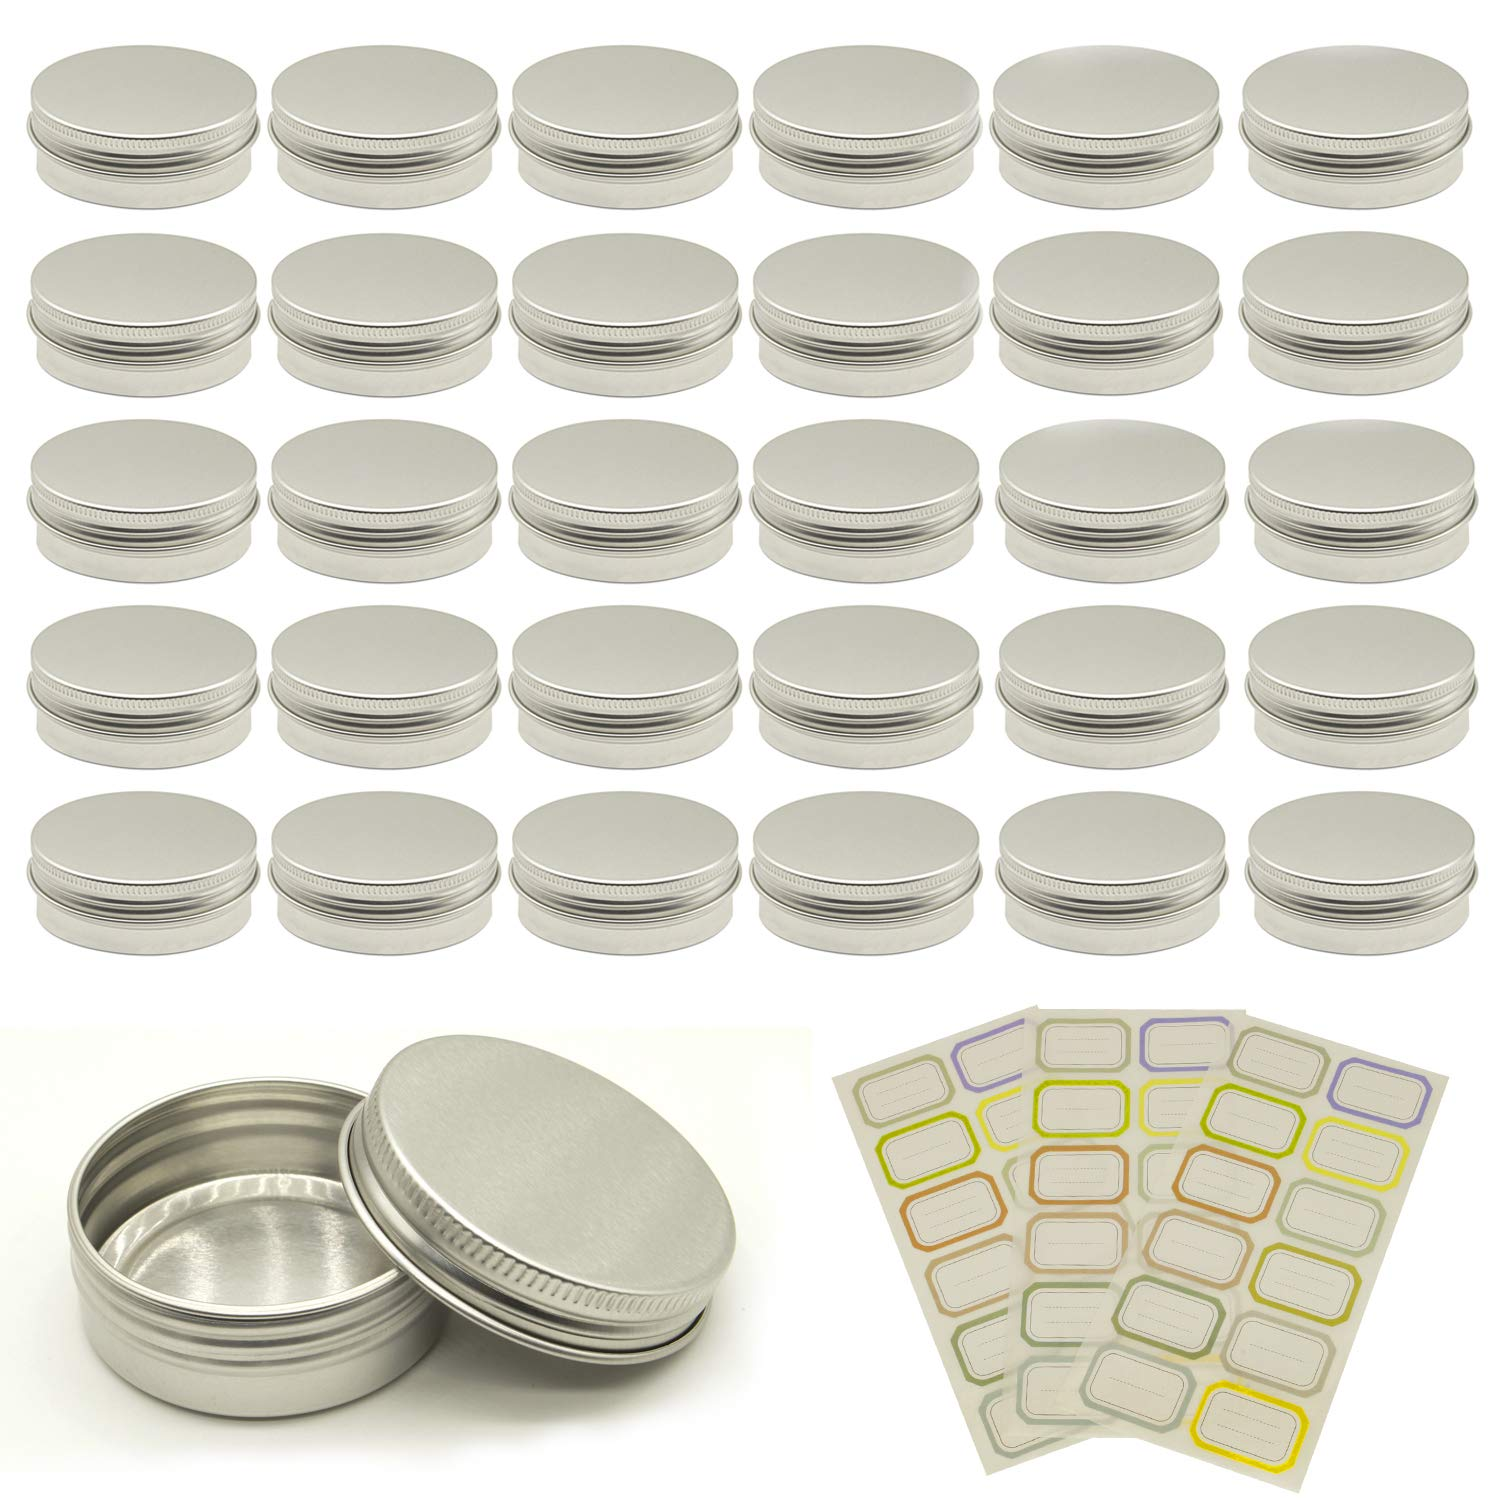 BEAVO 30 Pcs Aluminum Tin Cans (1oz & 2oz) Tins Containers Metal Tins with Lids Screw Cans and 36 Self-Adhesive Stickers Covering